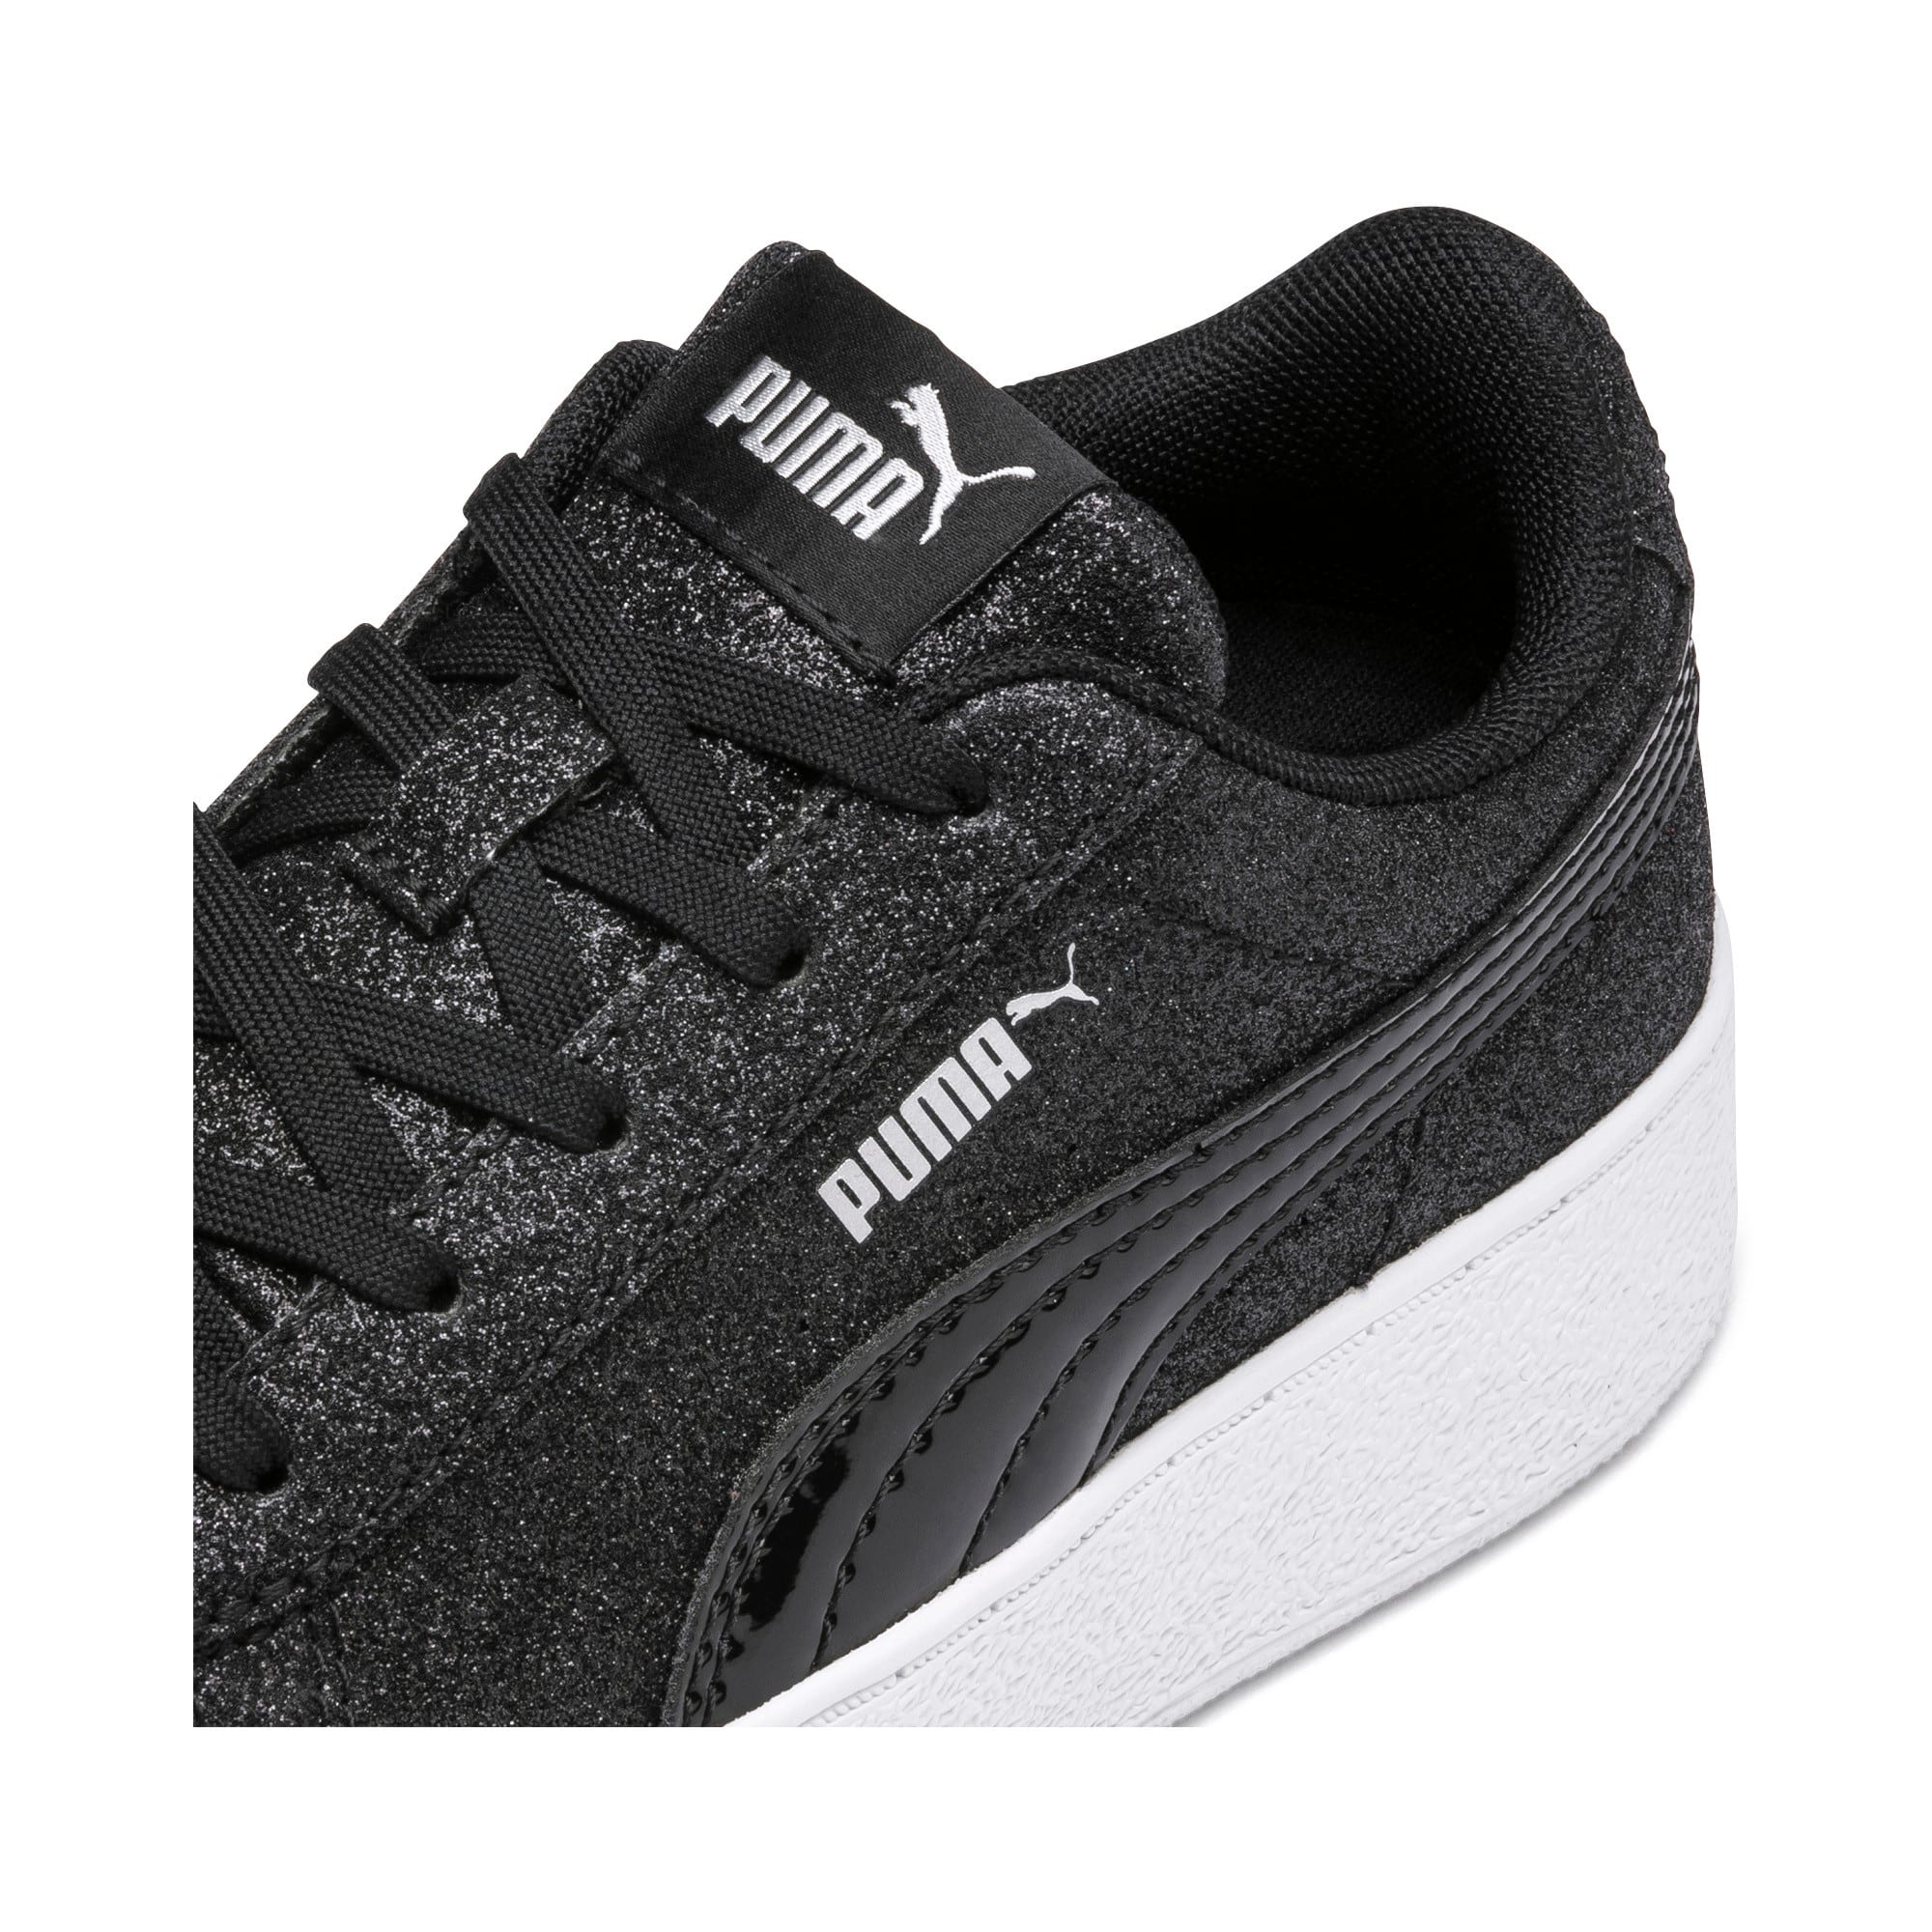 Thumbnail 7 of Basket Vikky Platform Glitz pour fille, Puma Black-Puma Black, medium